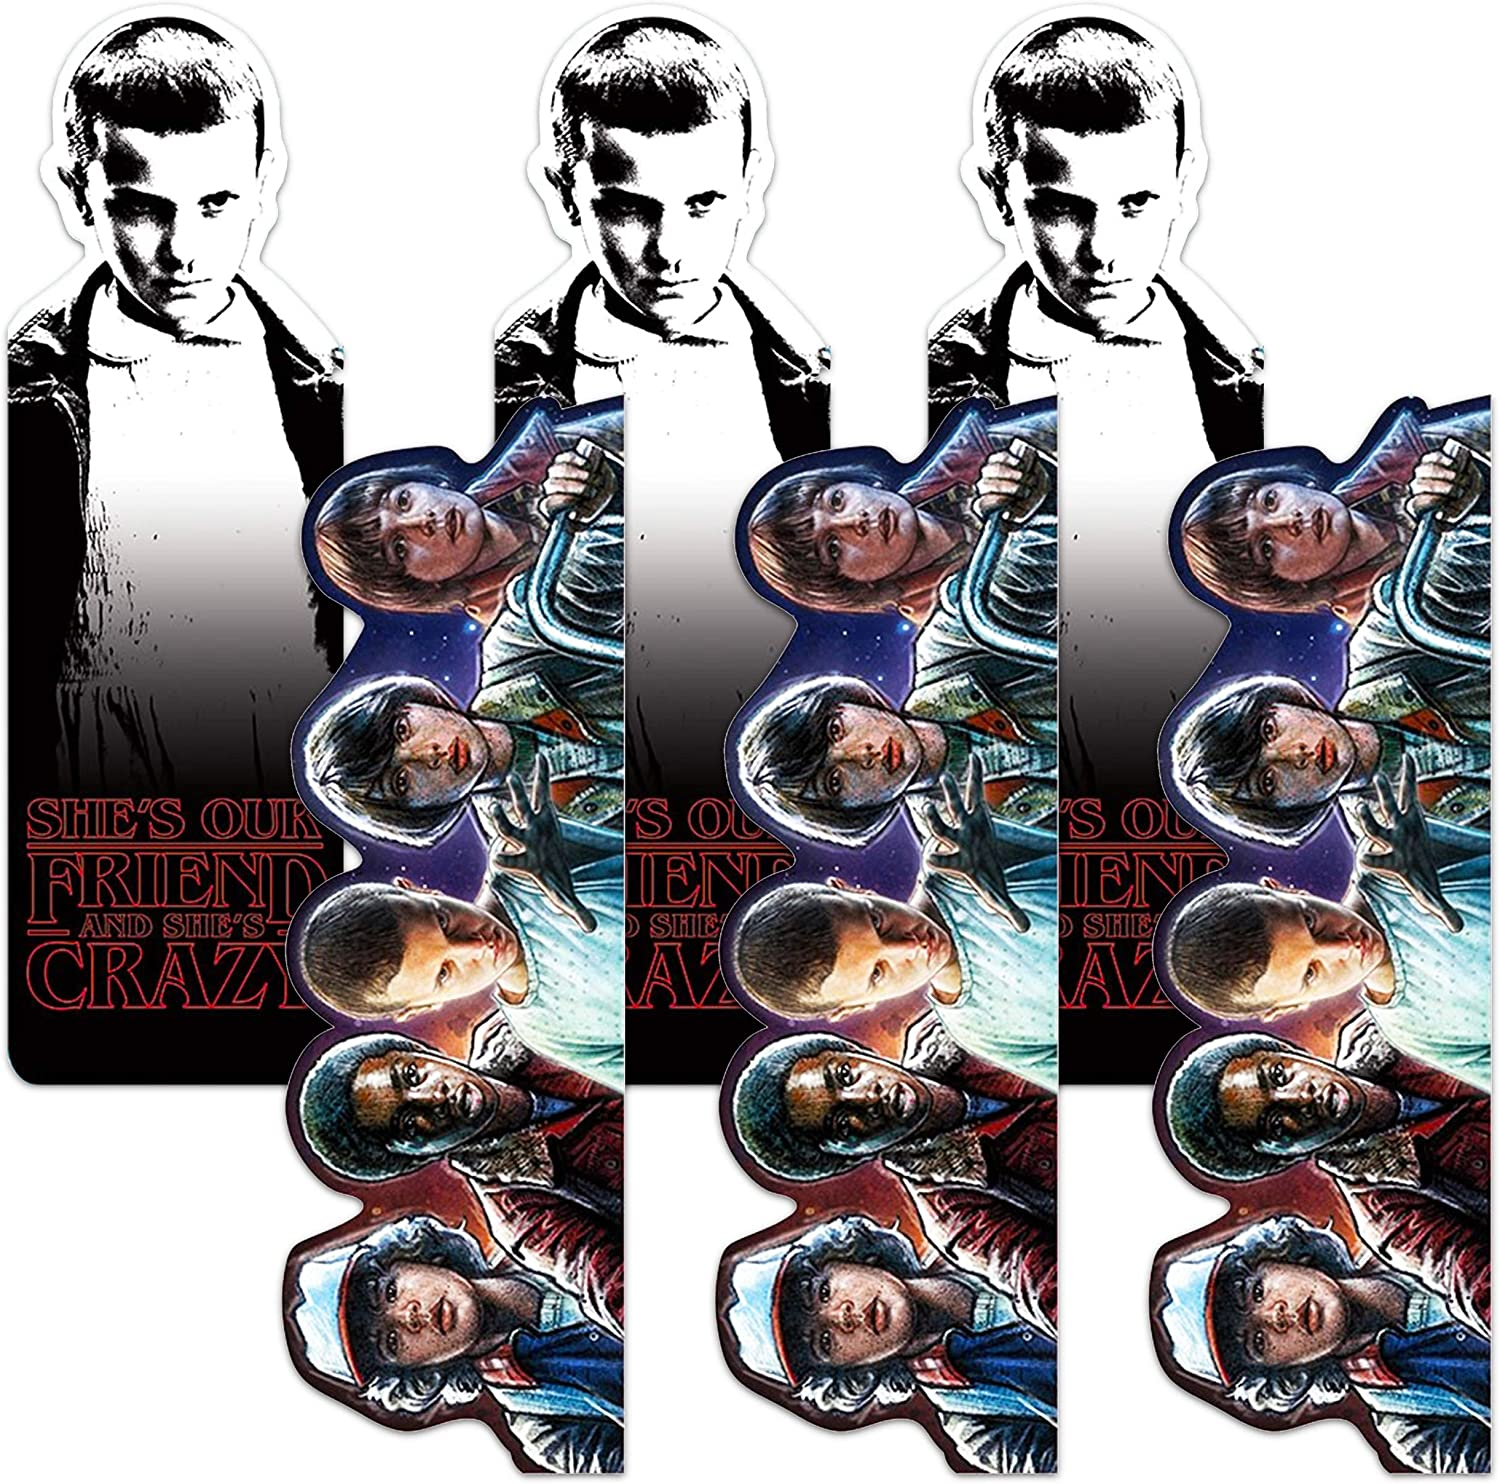 Stranger Things Party Favors Set - Set of 6 Stranger Things Bookmarks for Gifts, Party Supplies, Office Supplies (Netflix Licensed Merchandise Bundle)